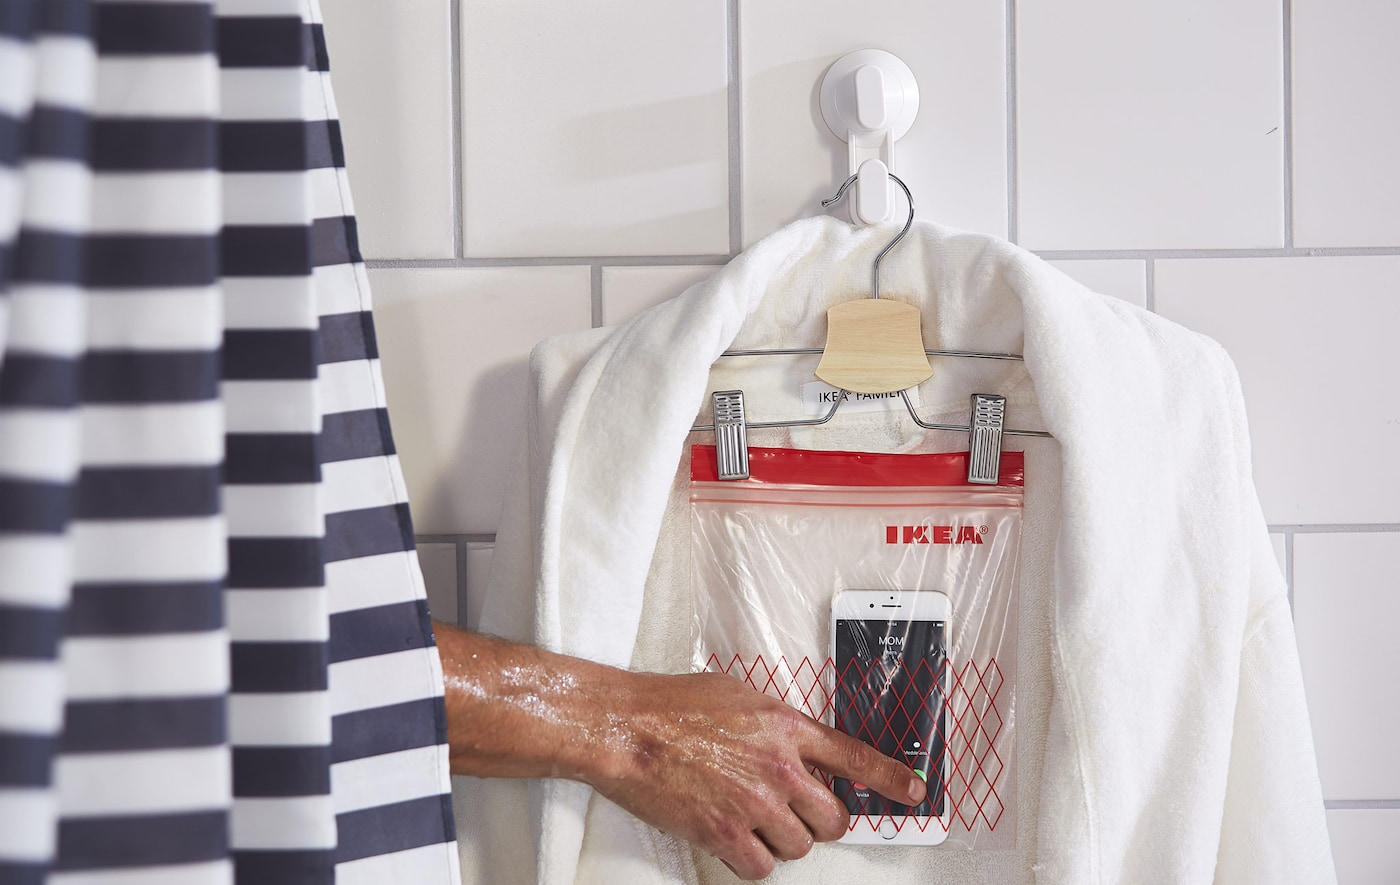 A plastic zip bag, pegged to a coat hanger, draped with a bath robe and used as a mobile phone holder.